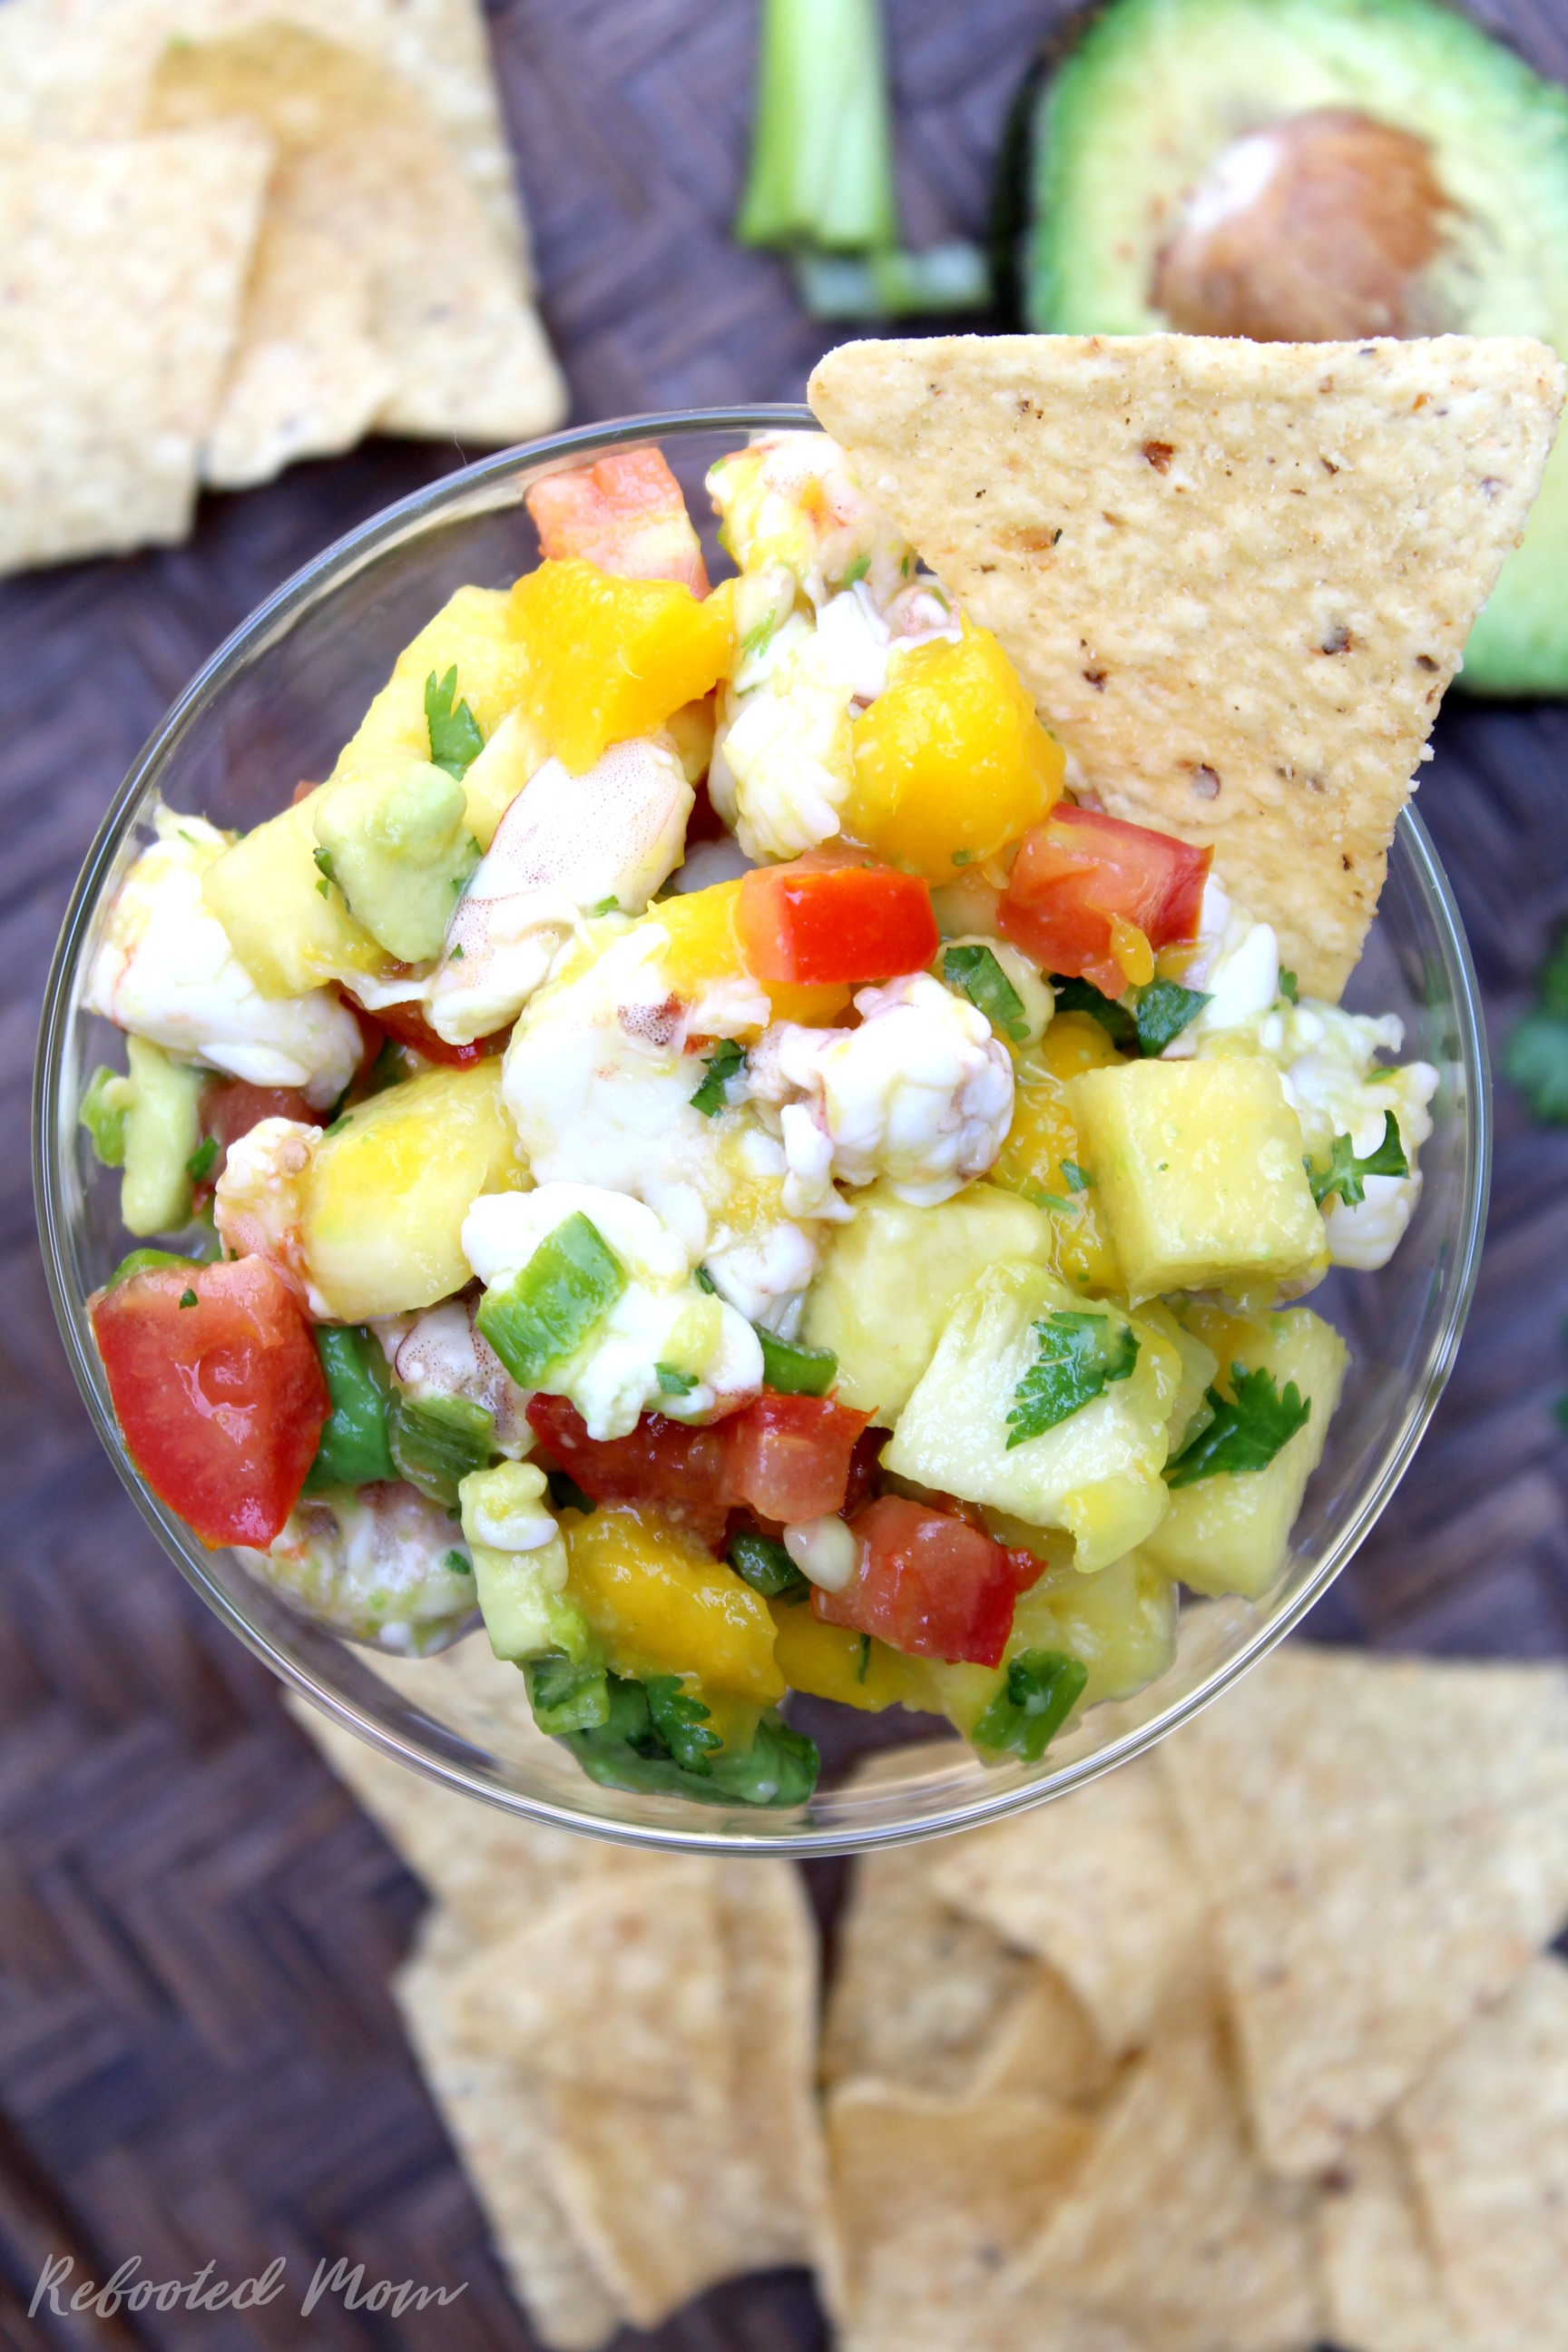 Mango Shrimp Ceviche With Avocado Rebooted Mom